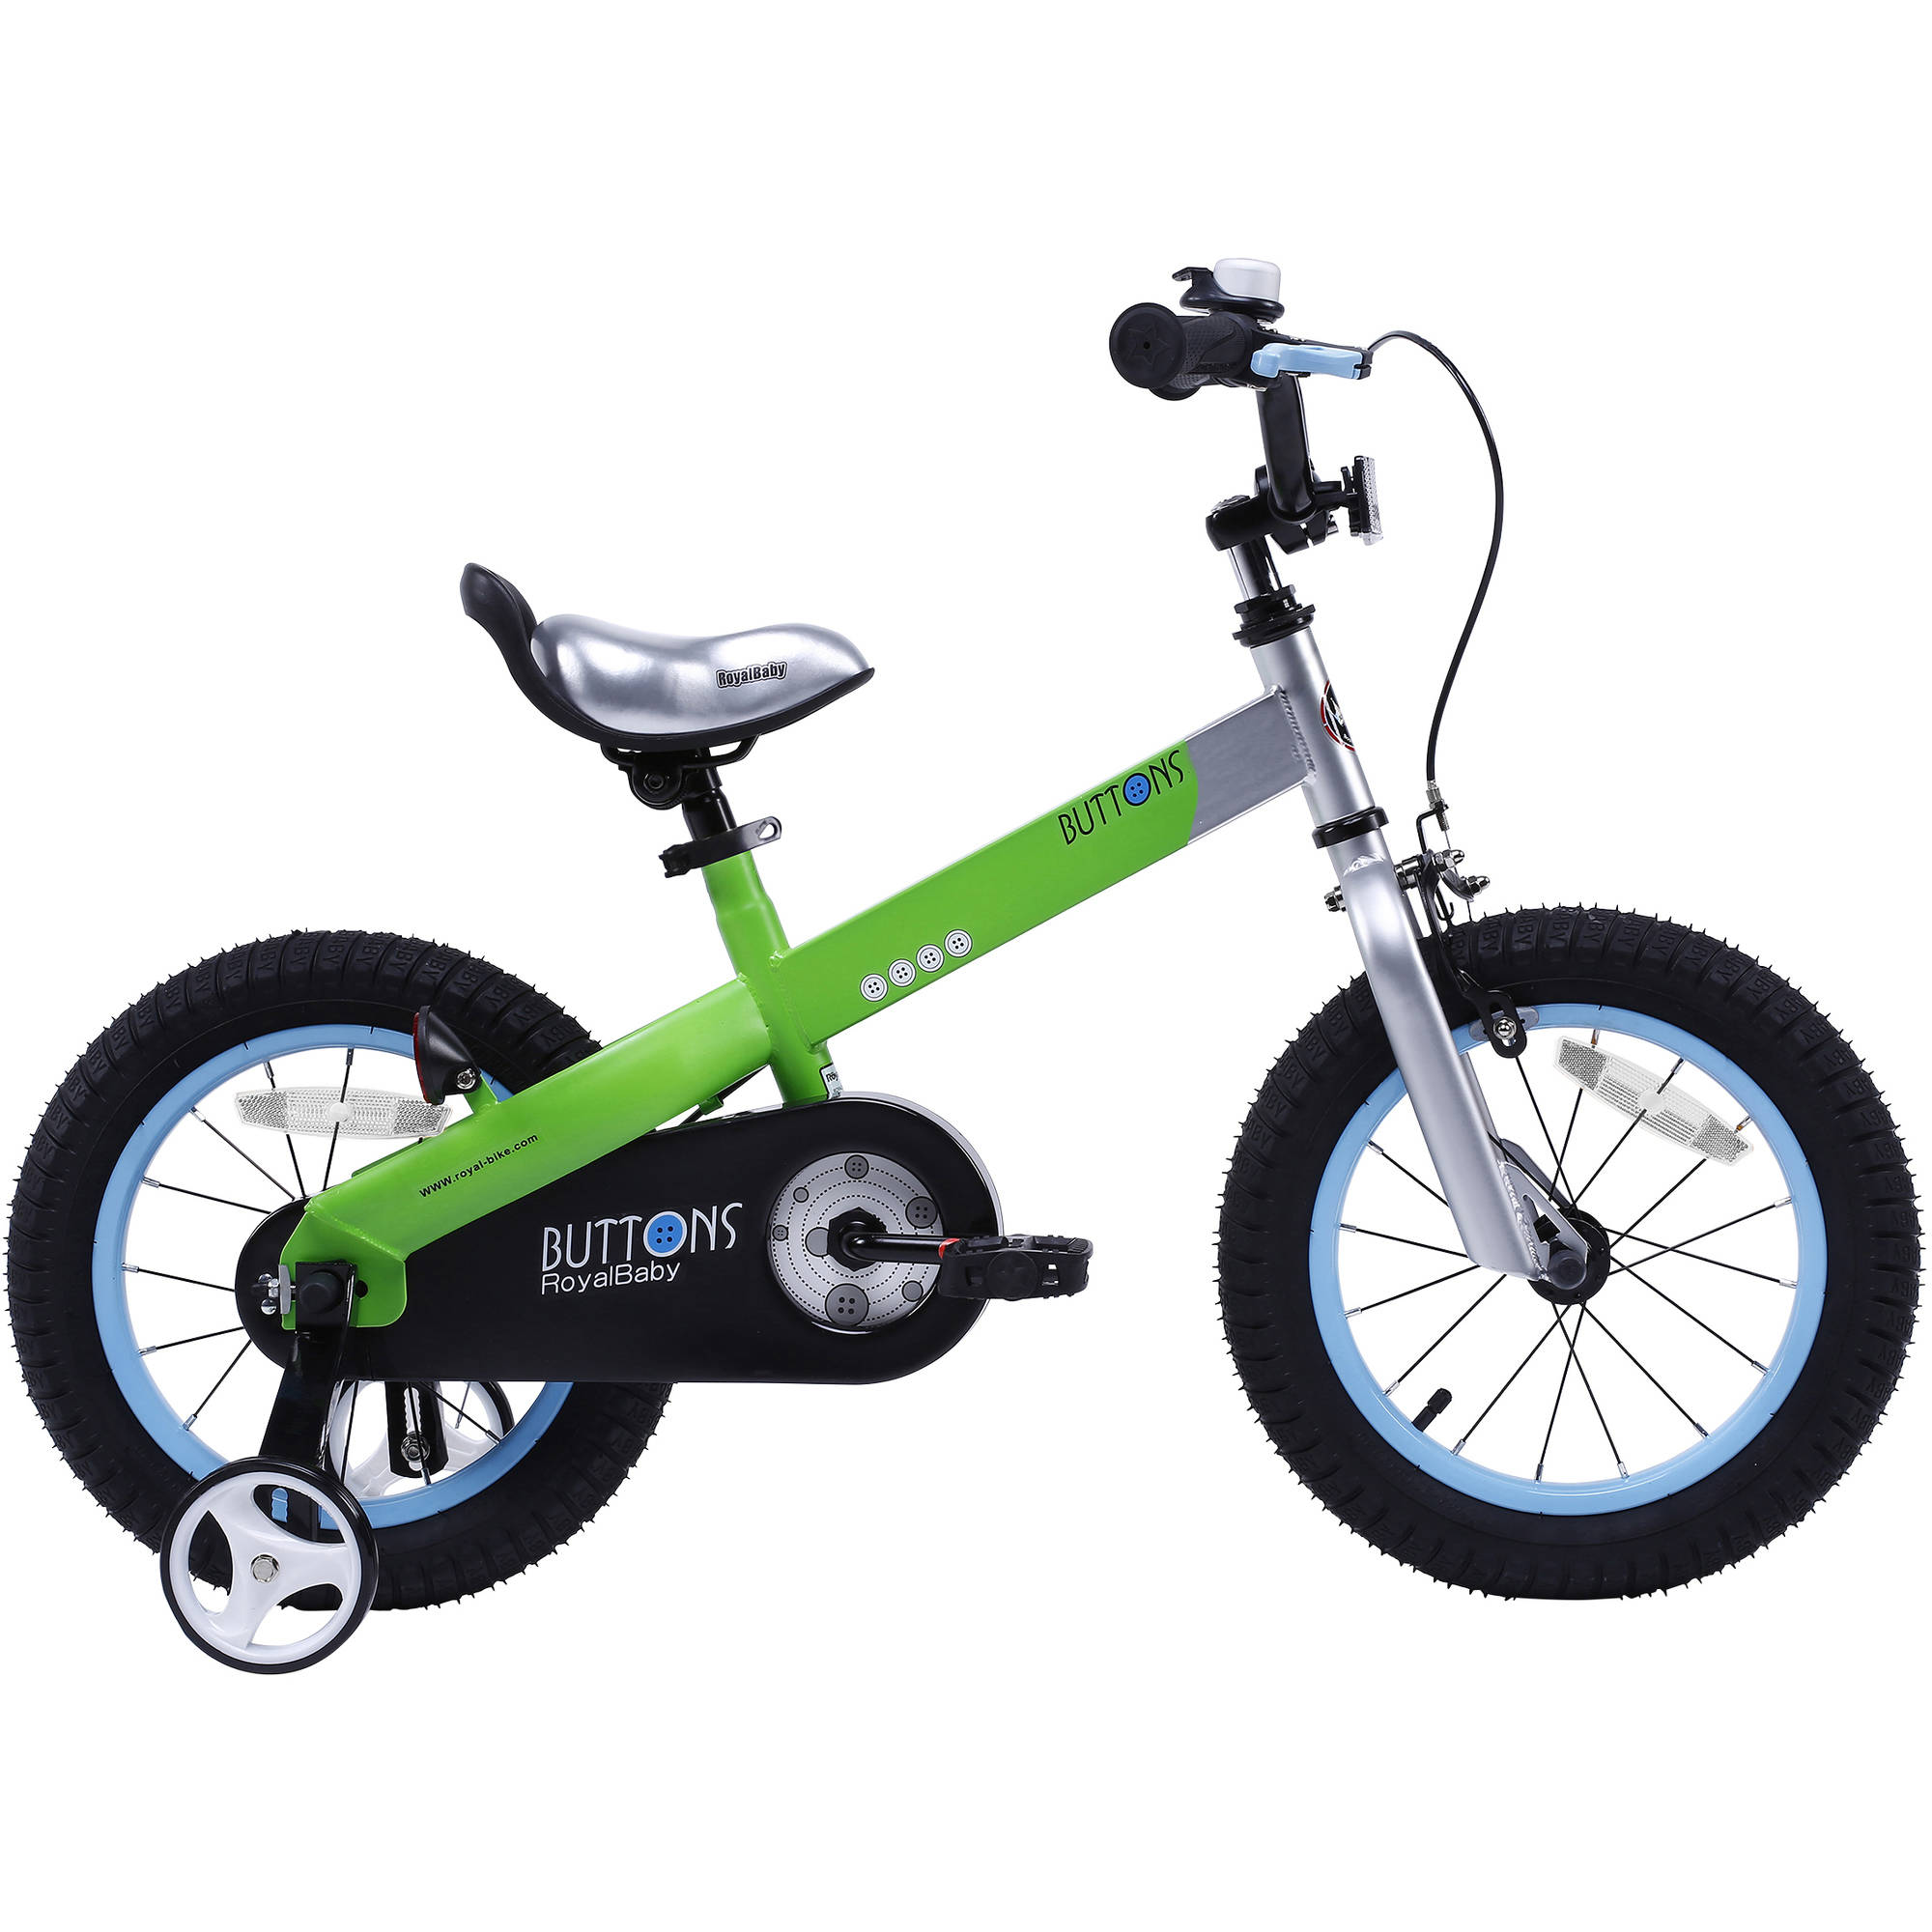 Overstock RoyalBaby Matte Buttons Kid's bike, unisex children's bike with training wheels, various trendy features, gifts for fashionable boys & girls, 12 inch wheels, Matte Green